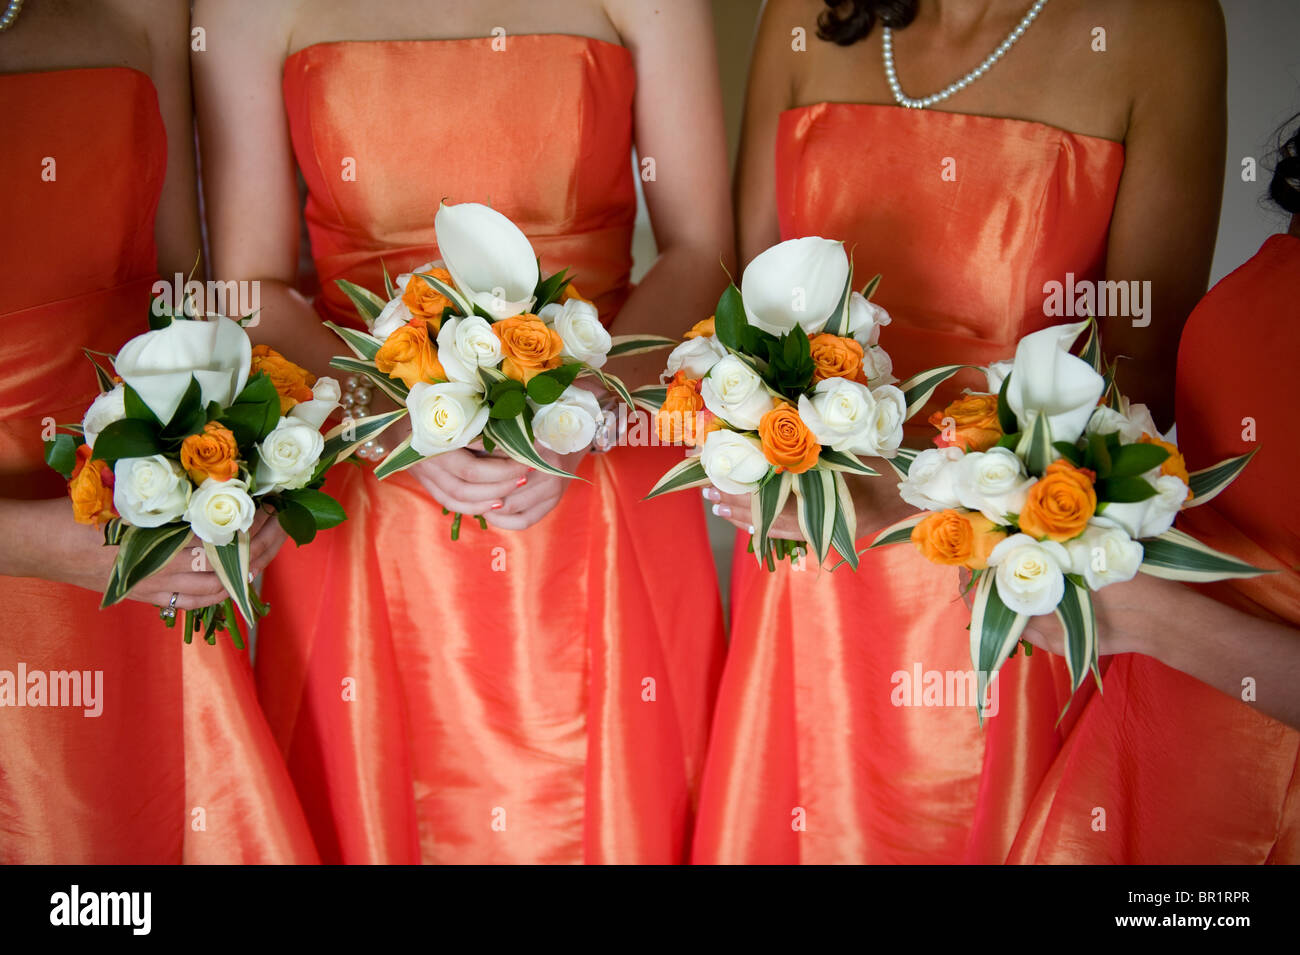 Bridesmaids holding wedding bouquets of orange and white roses and bridesmaids holding wedding bouquets of orange and white roses and white lilies mightylinksfo